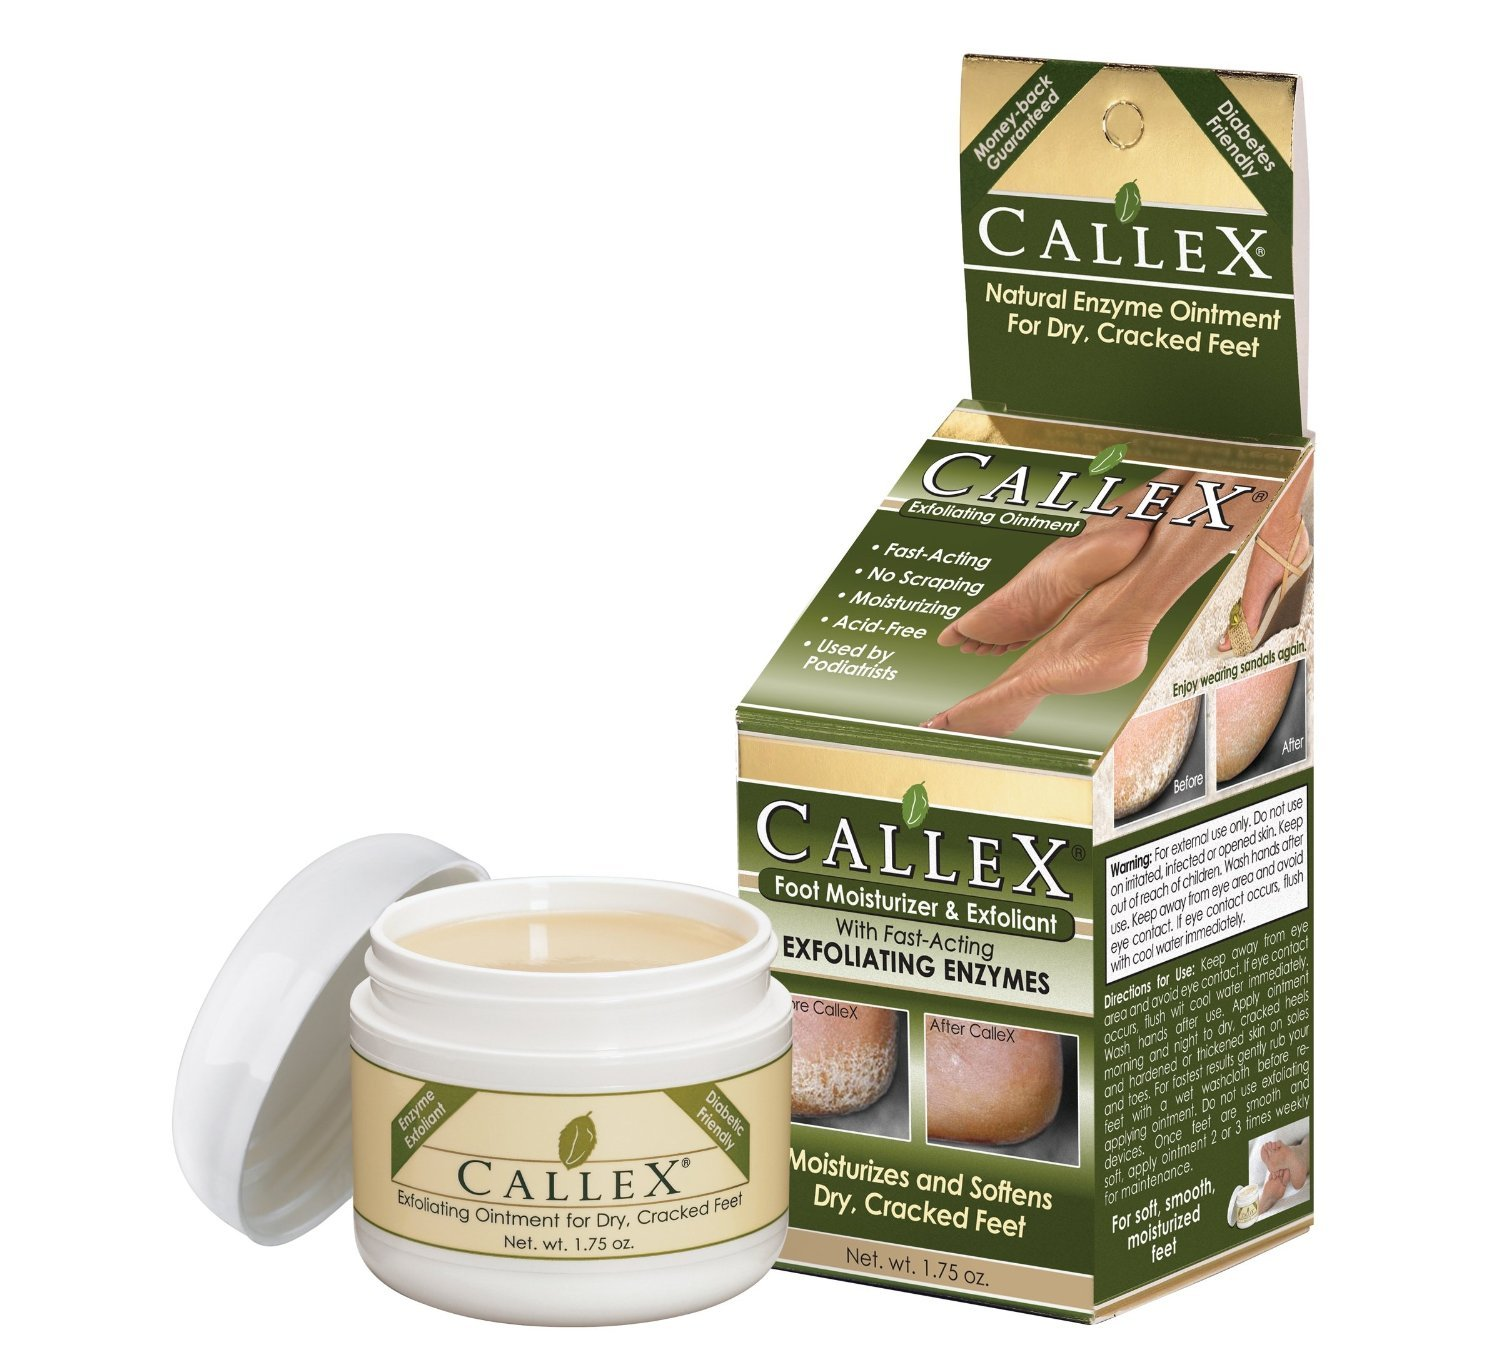 Xenna Callex, Callus Ointment Exfoliates and Moisturizes Dry Cracked Feet, 1.75 oz (Pack of 2)